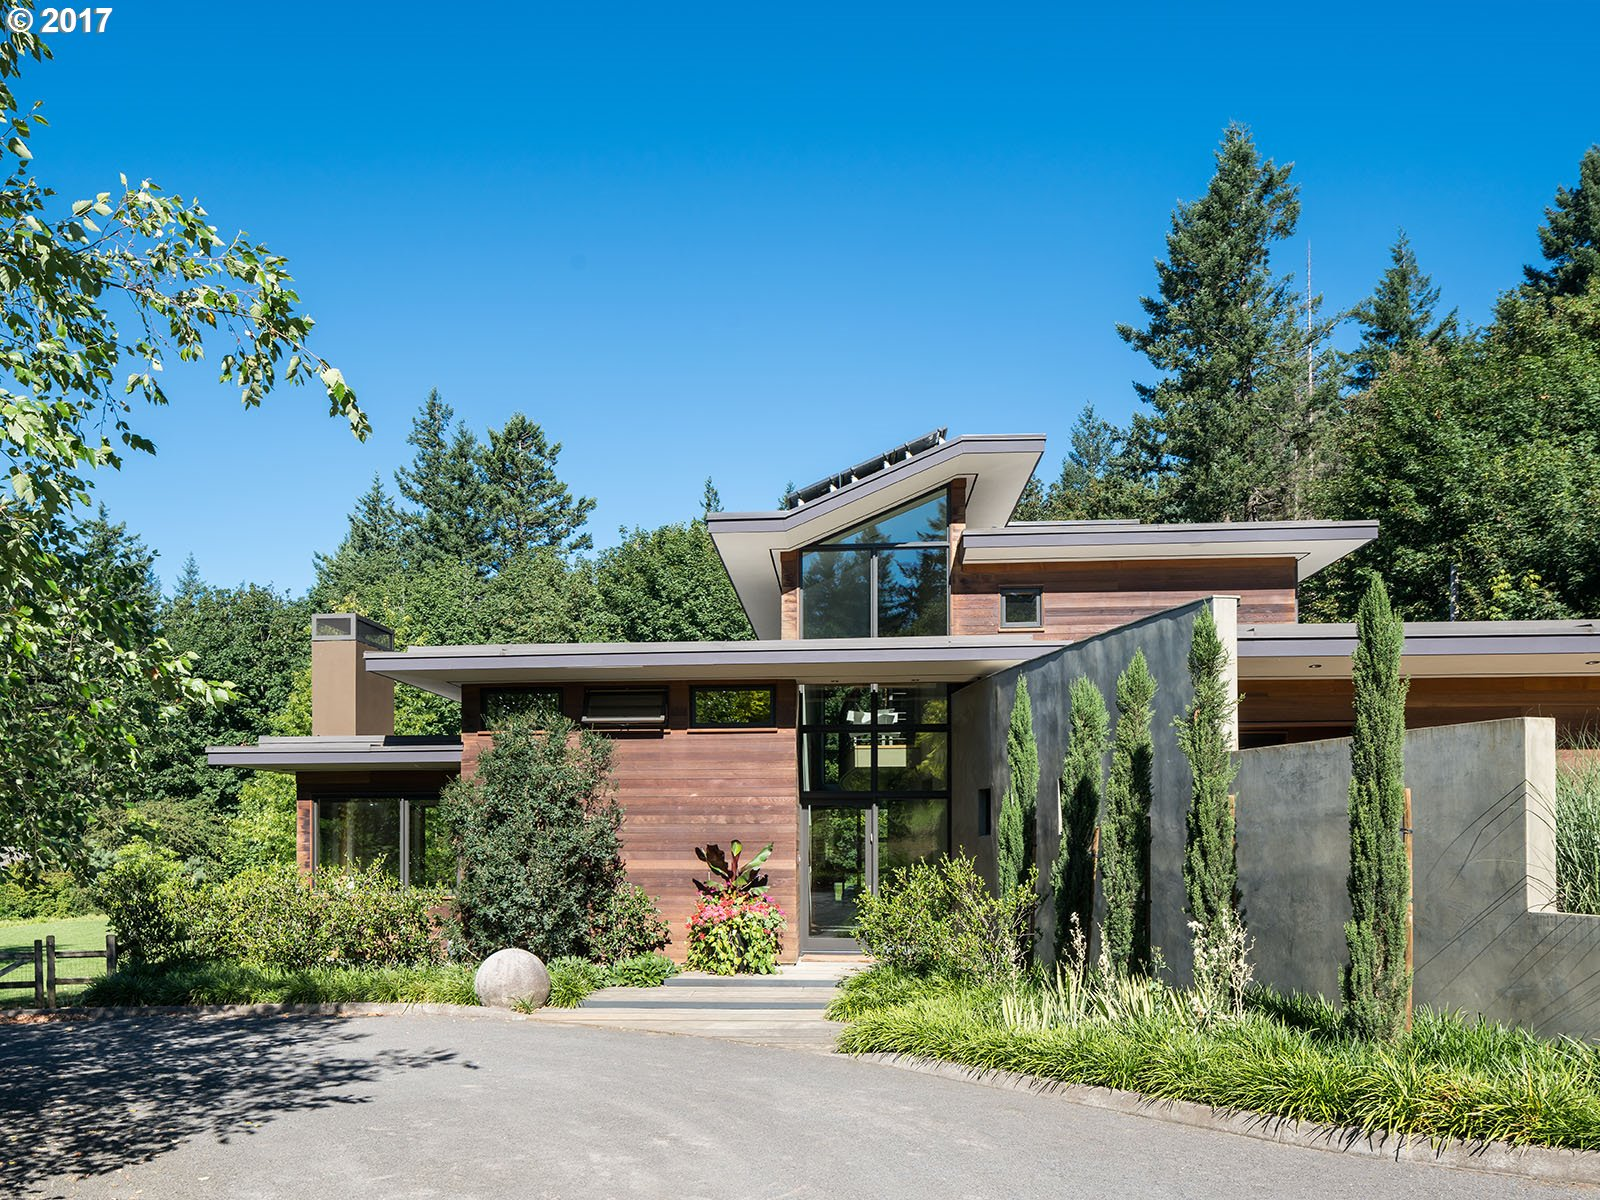 448 Nw Skyline Blvd, Portland, OR 97229